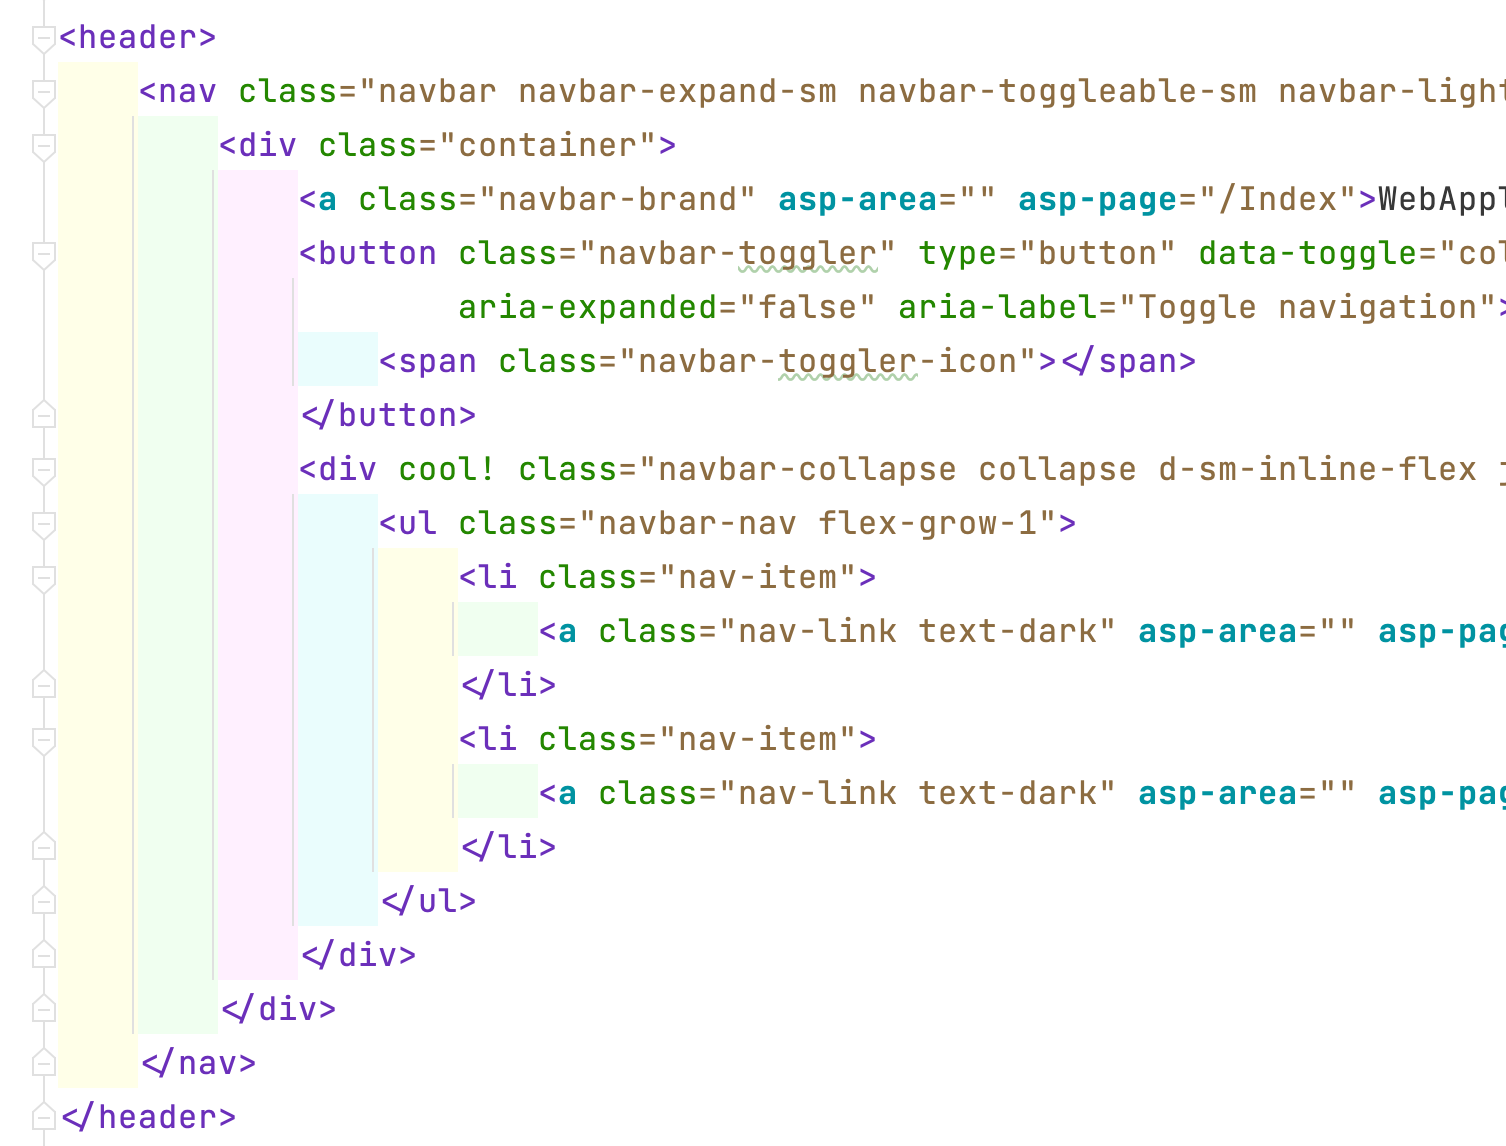 Indent Rainbow in Rider showing blocks of HTML.